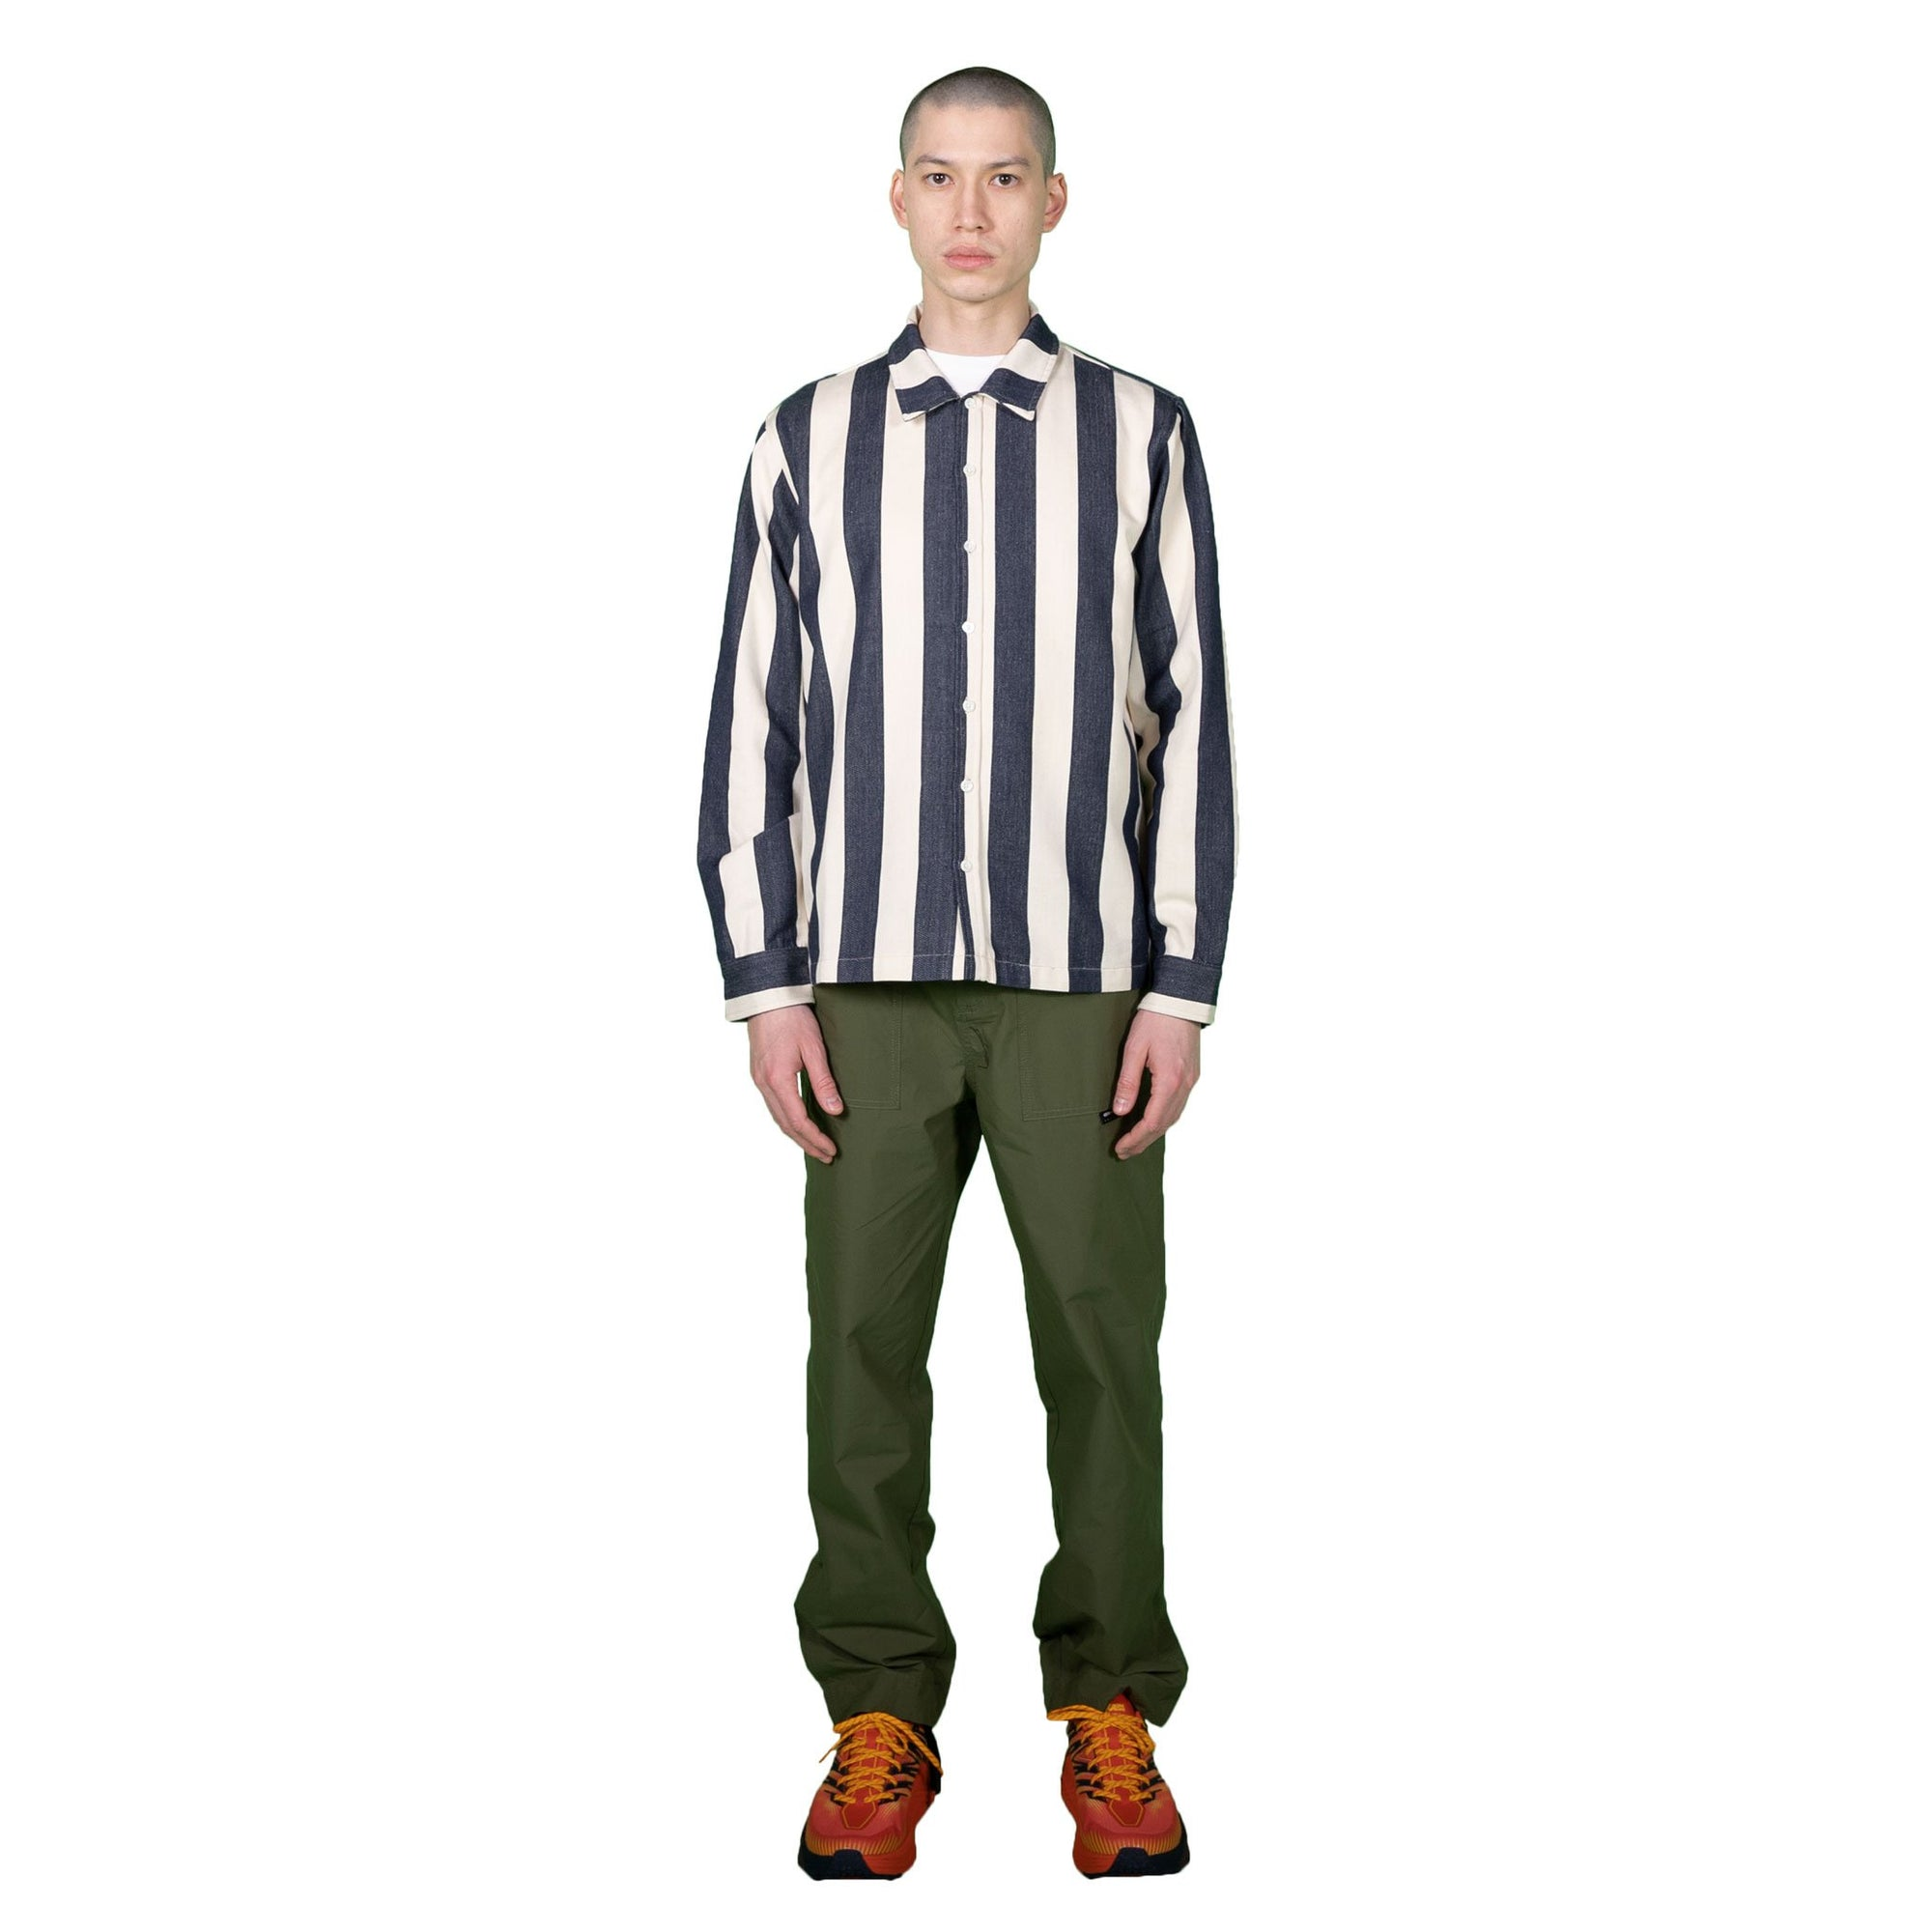 Garbstore Storage Pant in Green